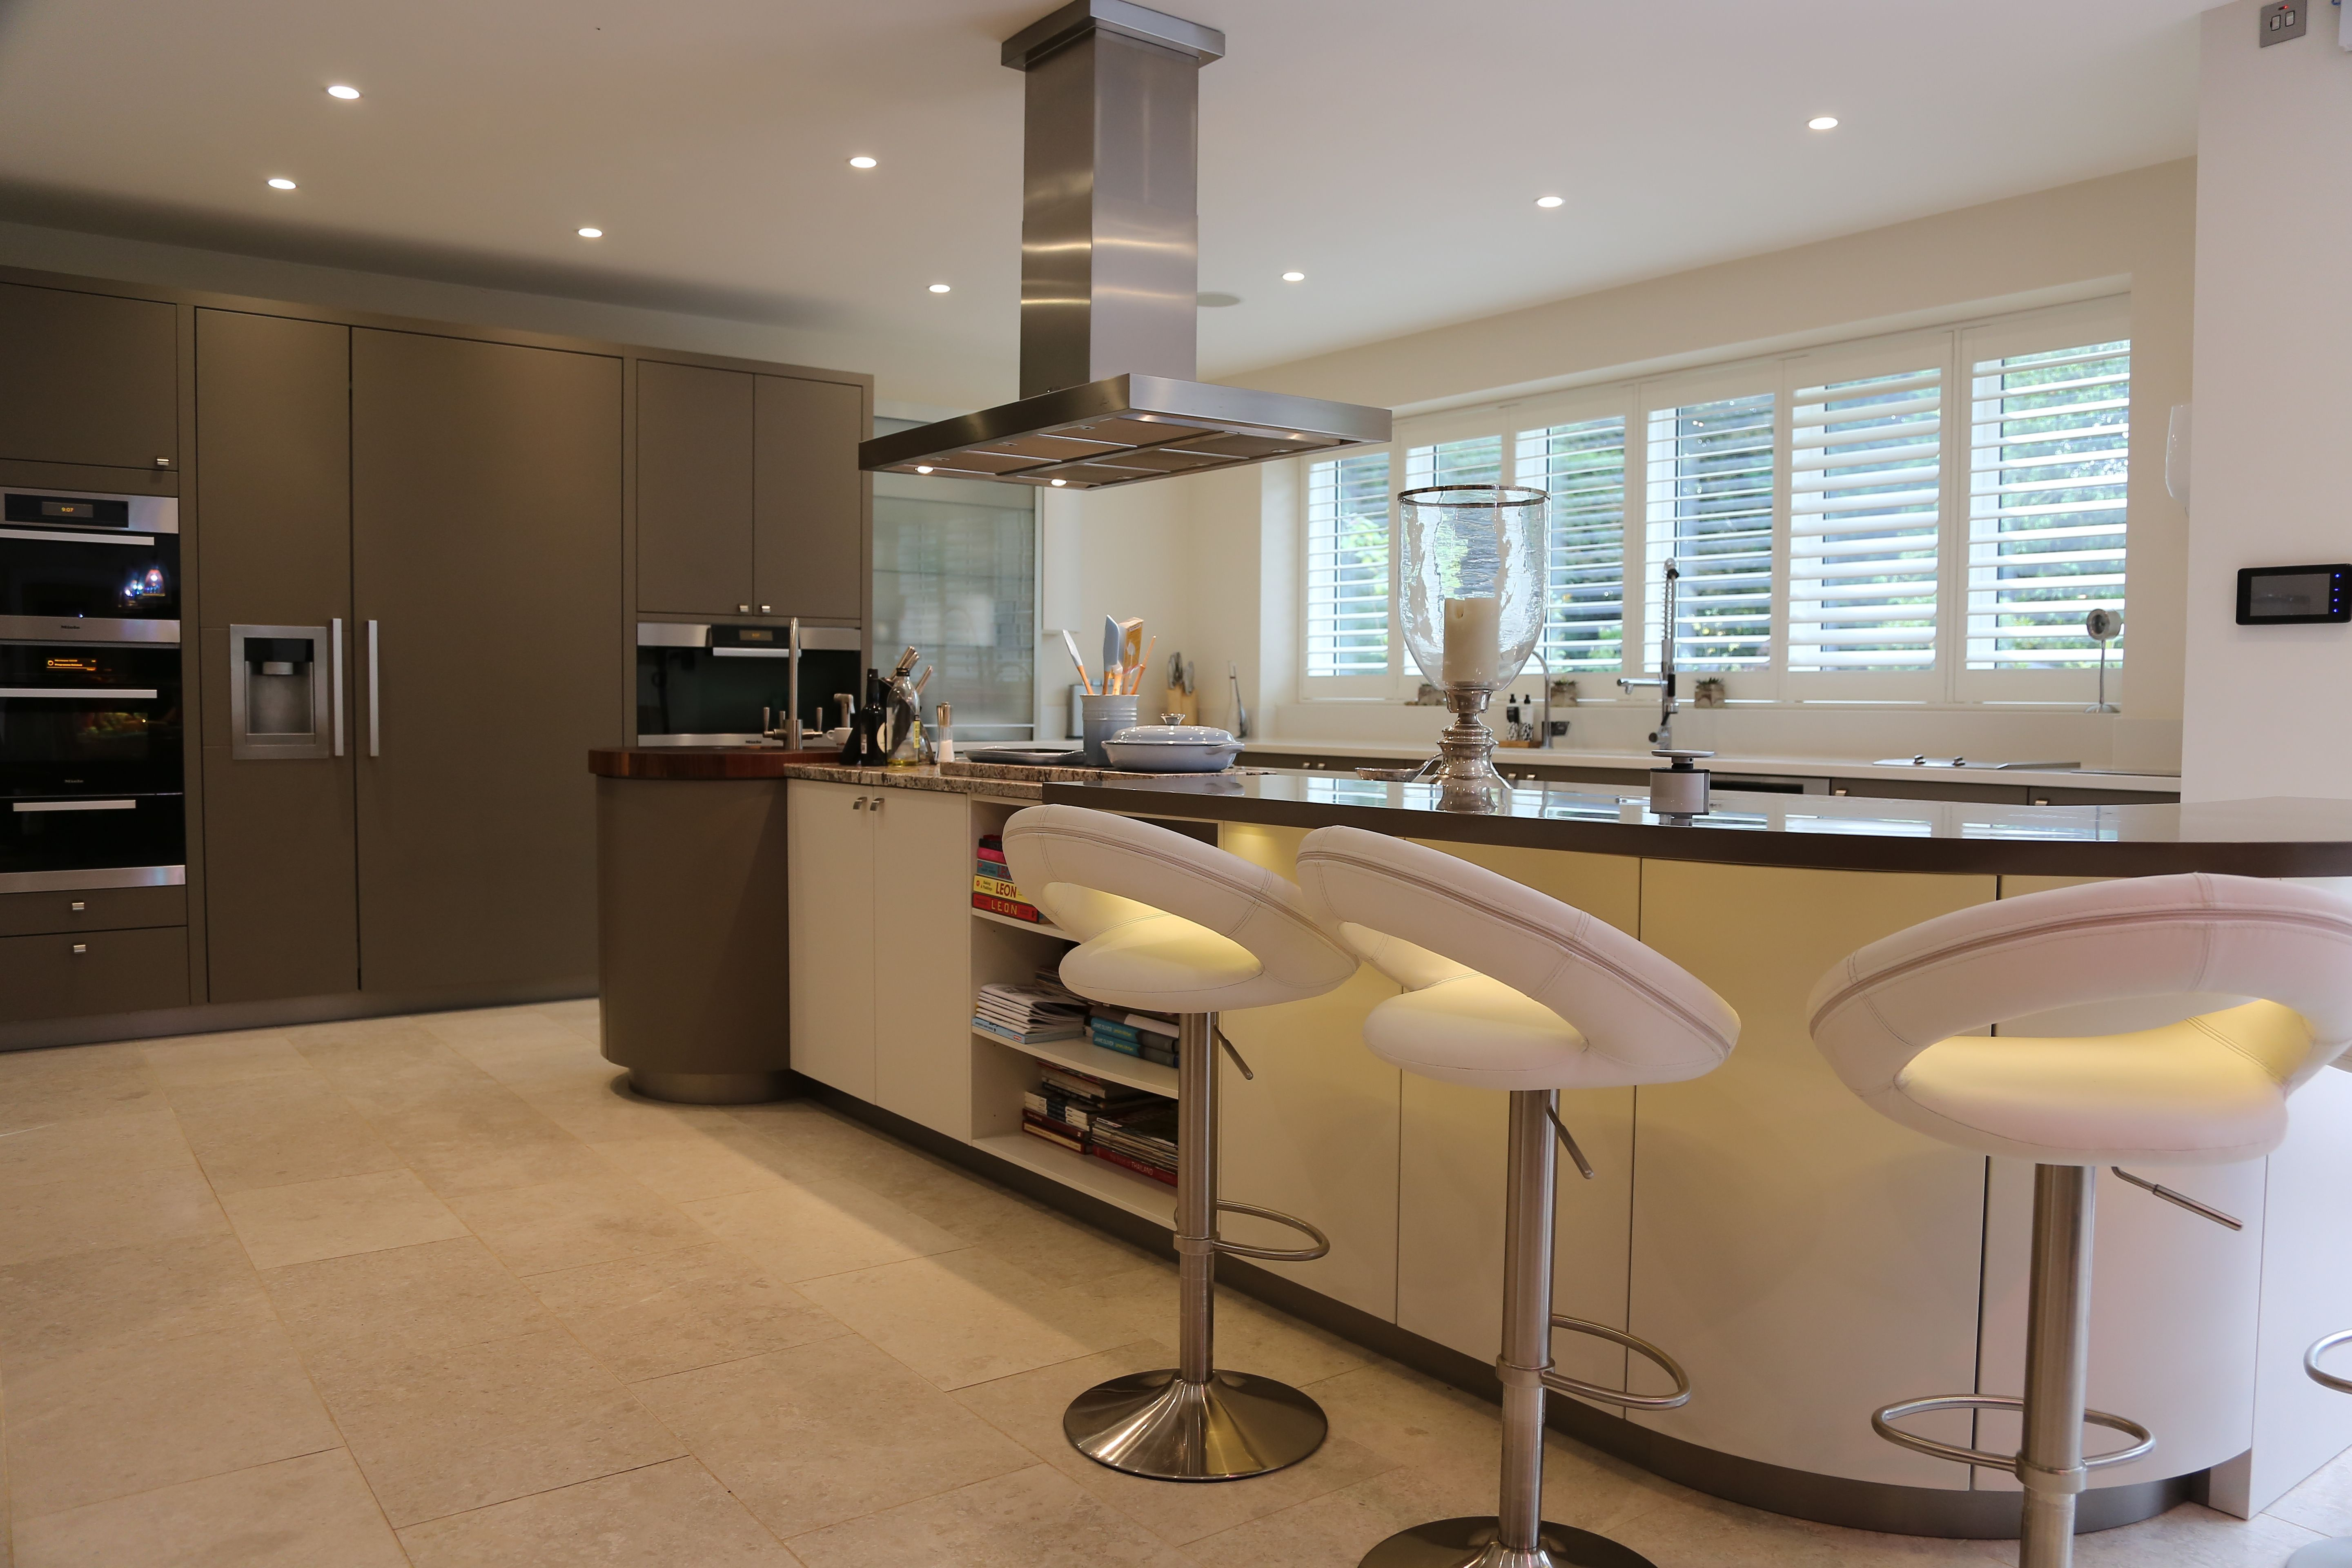 The Kitchen Furniture Company Satin Lacquer Beige And Gloss Magnolia By Hacker At The Kitchen